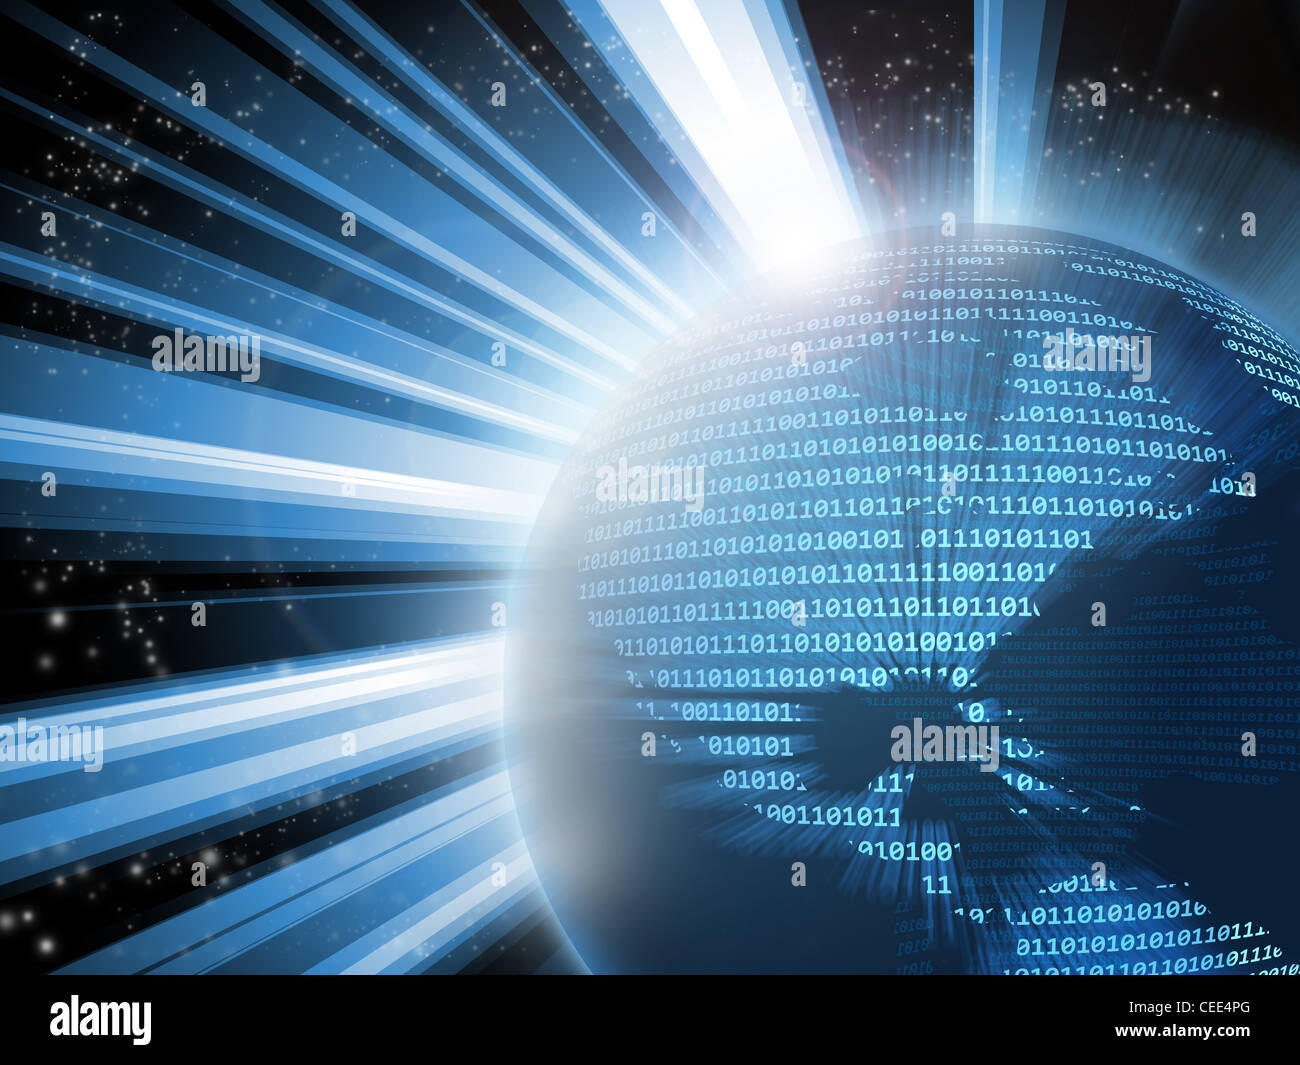 Planet earth made of binary code with one a zeros, showing America. Blue is predominant. - Stock Image